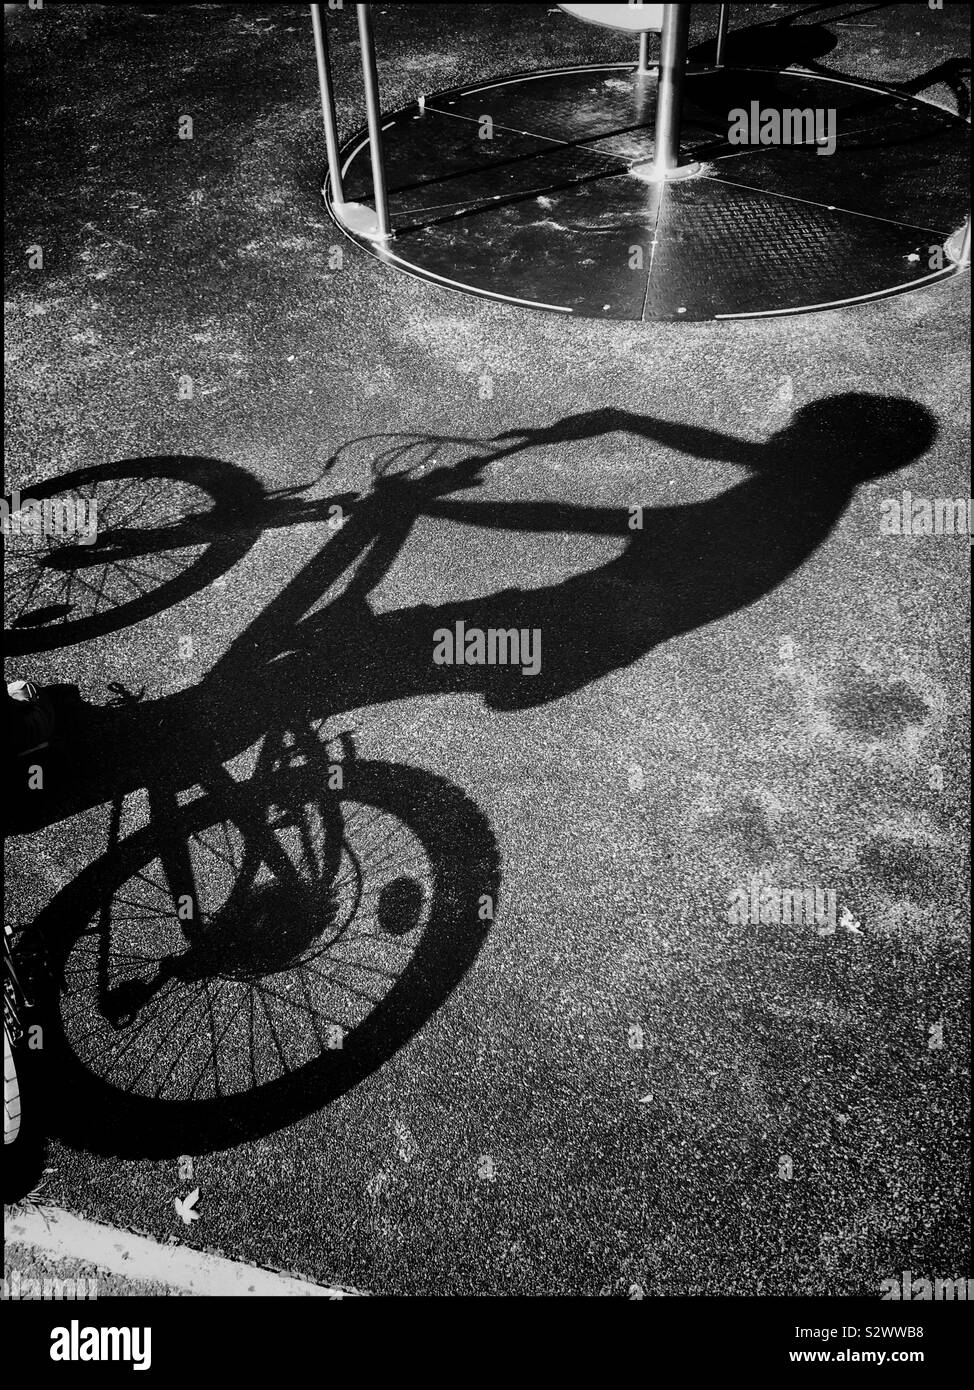 The shadow of a boy riding his bicycle in a playground. The bright sunshine has created an interesting shadow on the ground. Photo © COLIN HOSKINS. Stock Photo